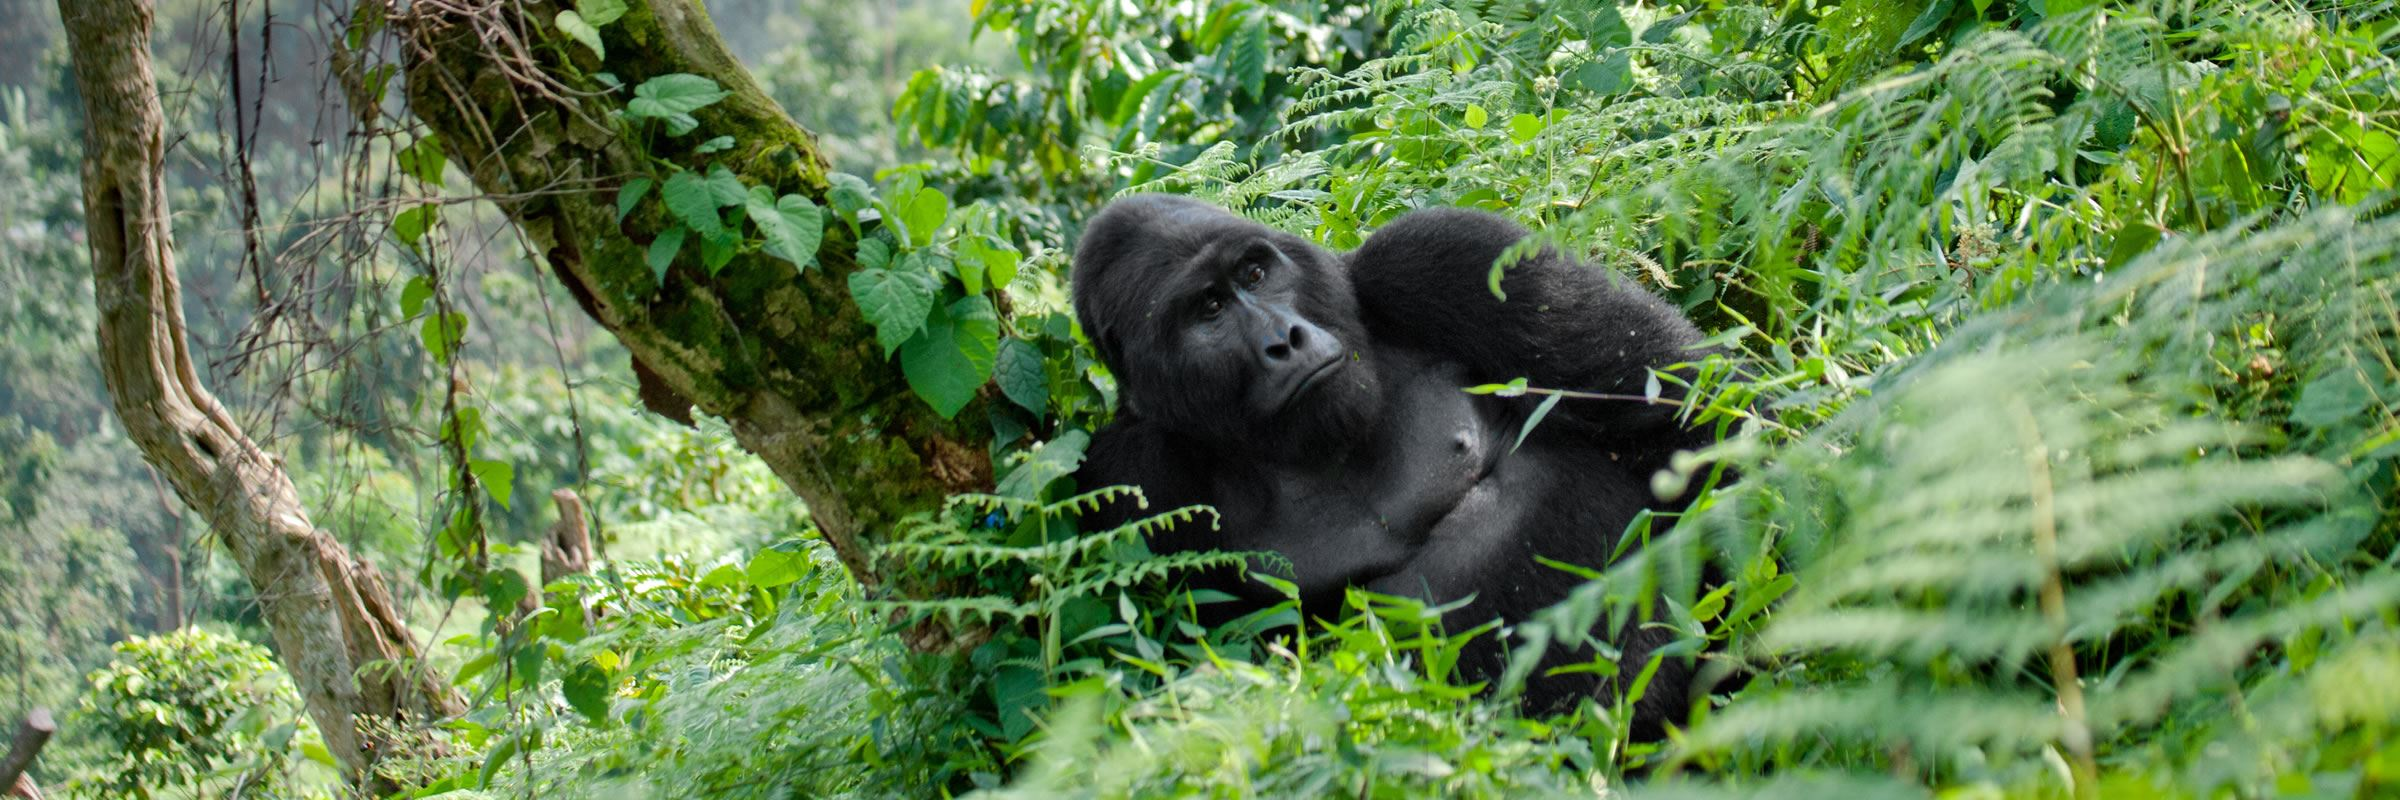 Mountain gorilla, Bwindi Impenetrable Forest National Park, Uganda